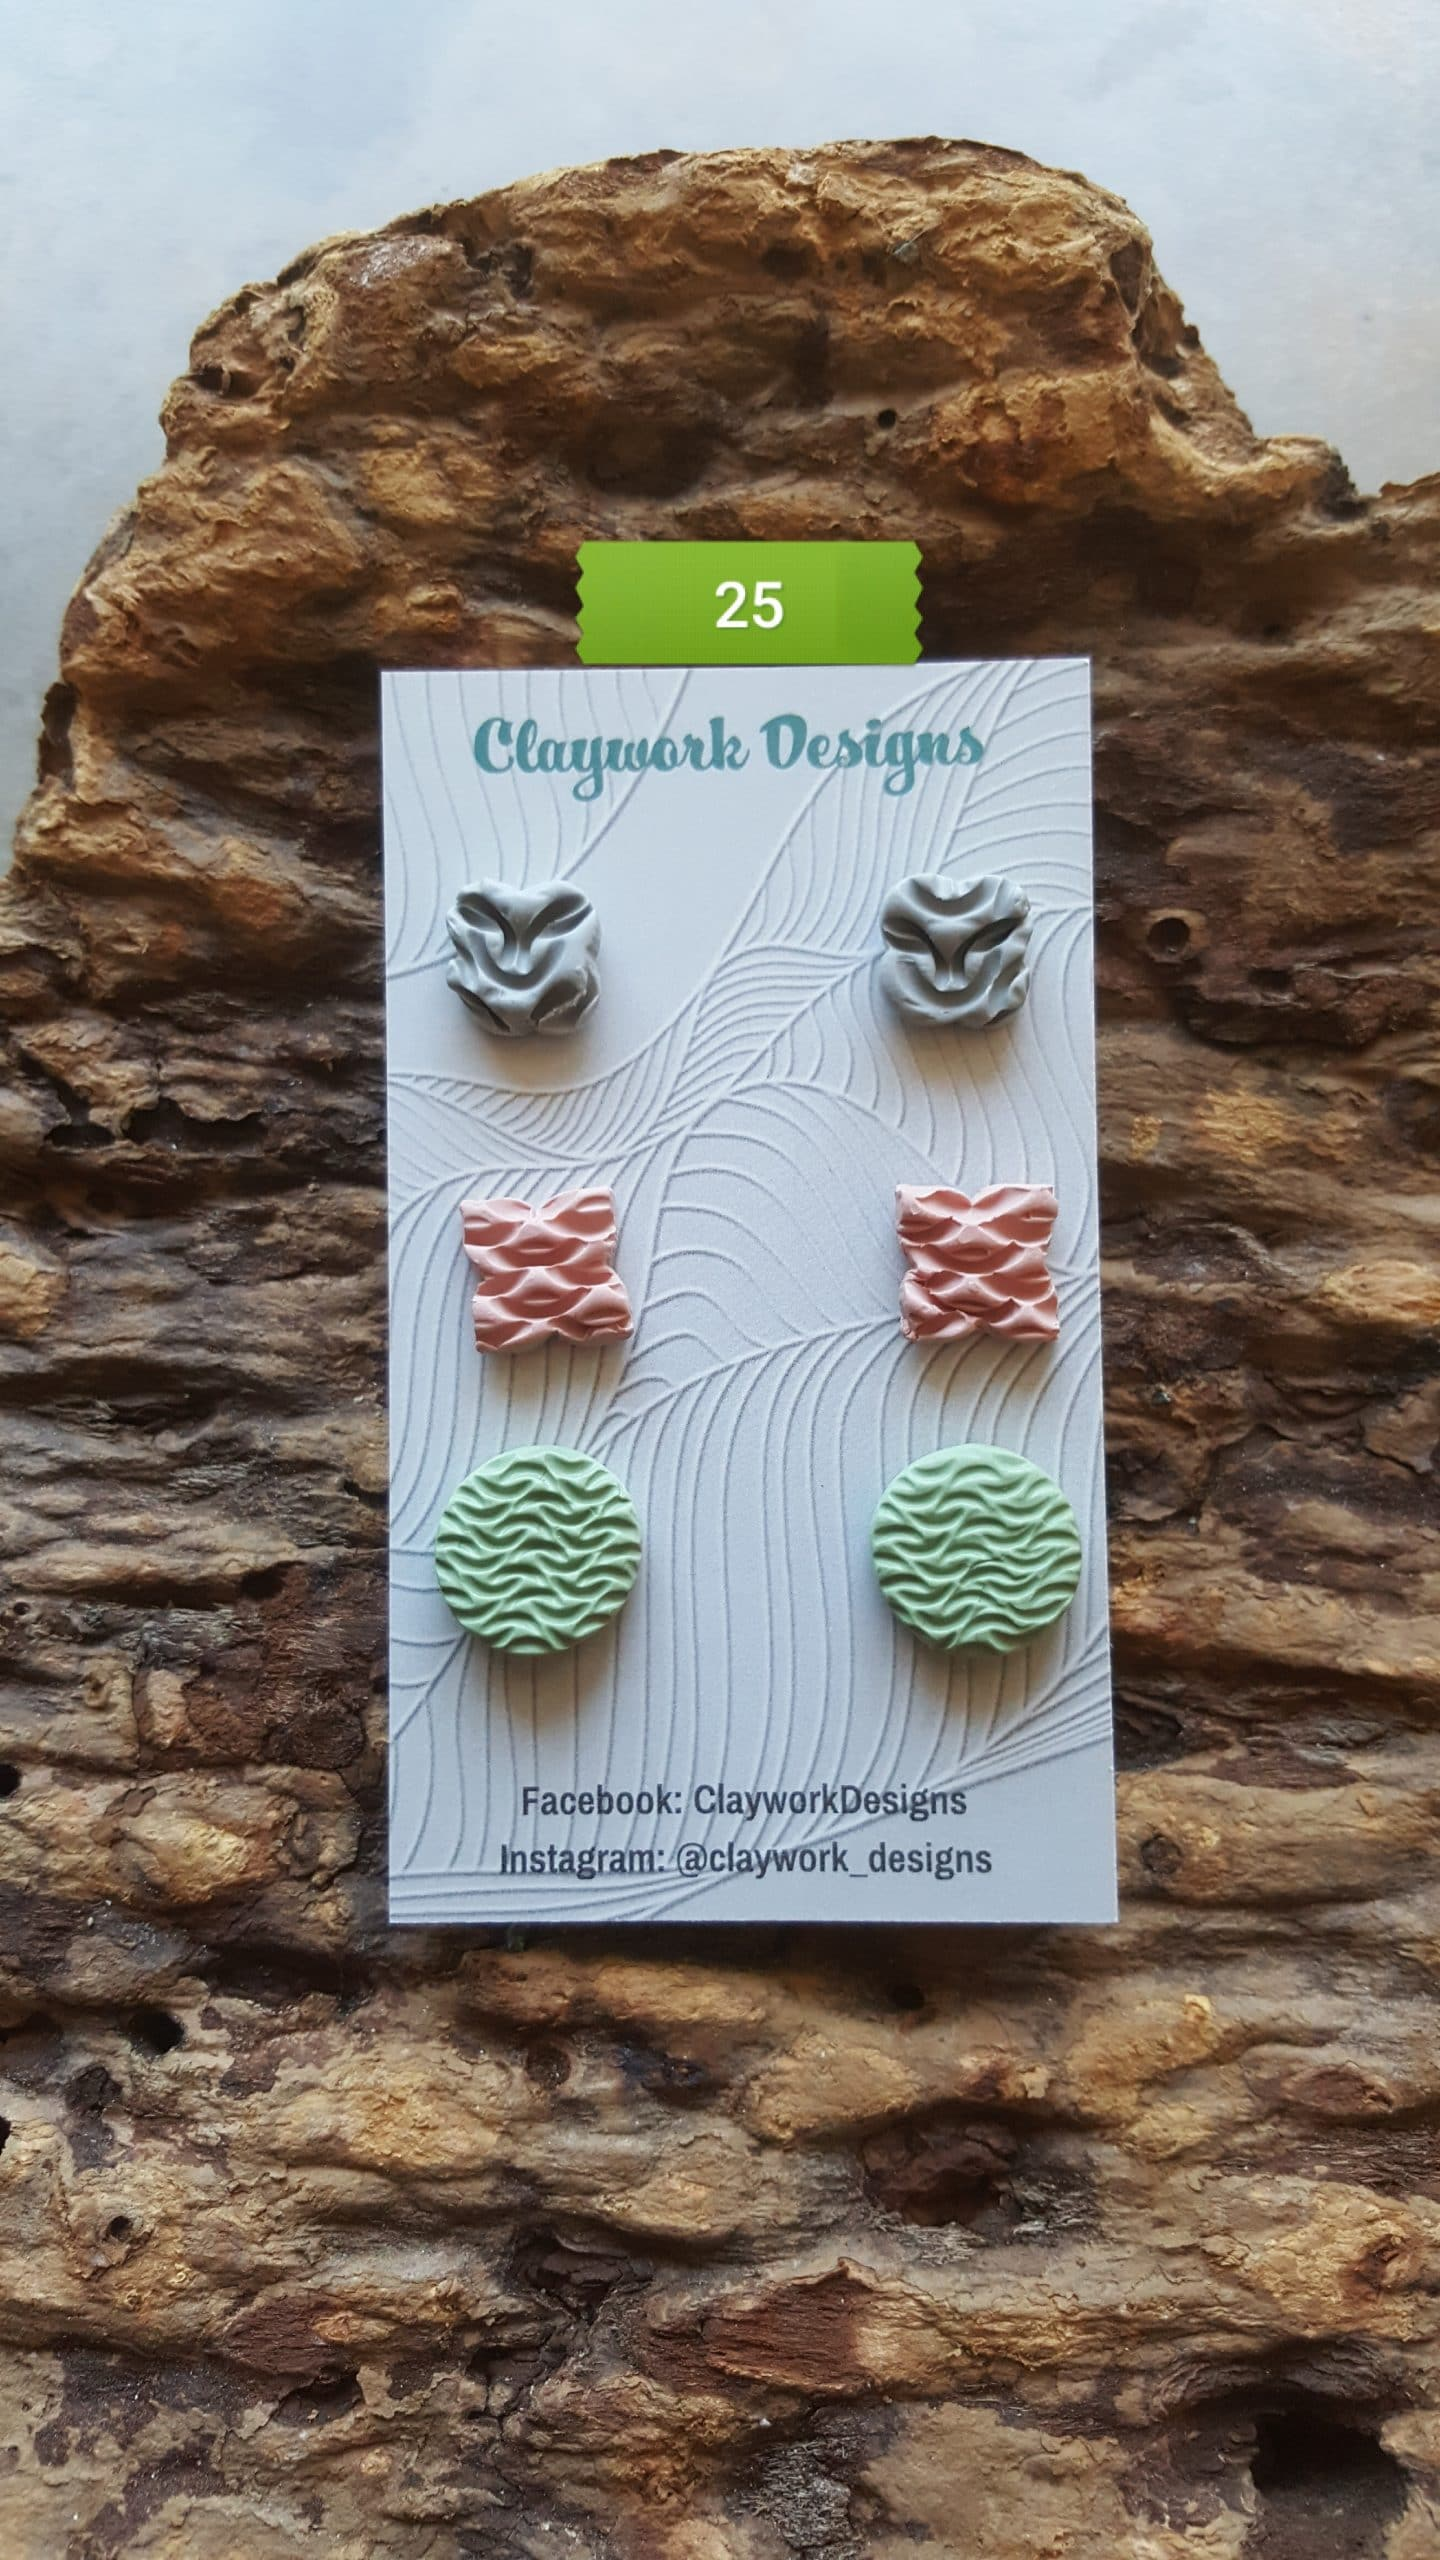 Wirework Designs | Handcrafted chainmaille jewellery and chainmaille products | Chainmaille Weave Stud Earring - 3 Packs | 20210620_173228